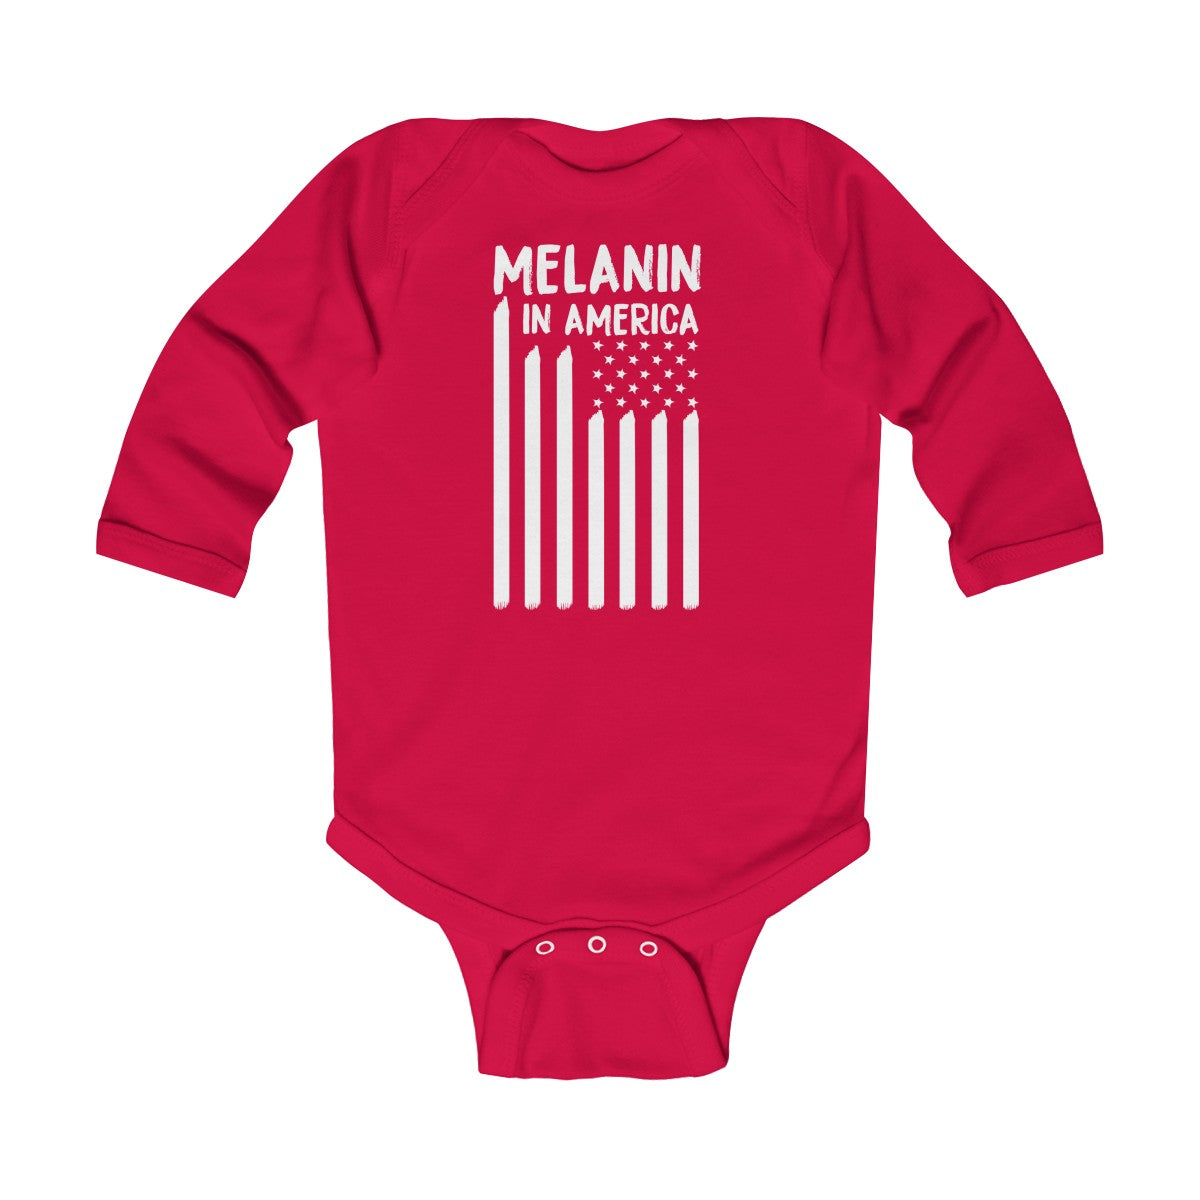 Melanin in America Infant Long Sleeve Bodysuit